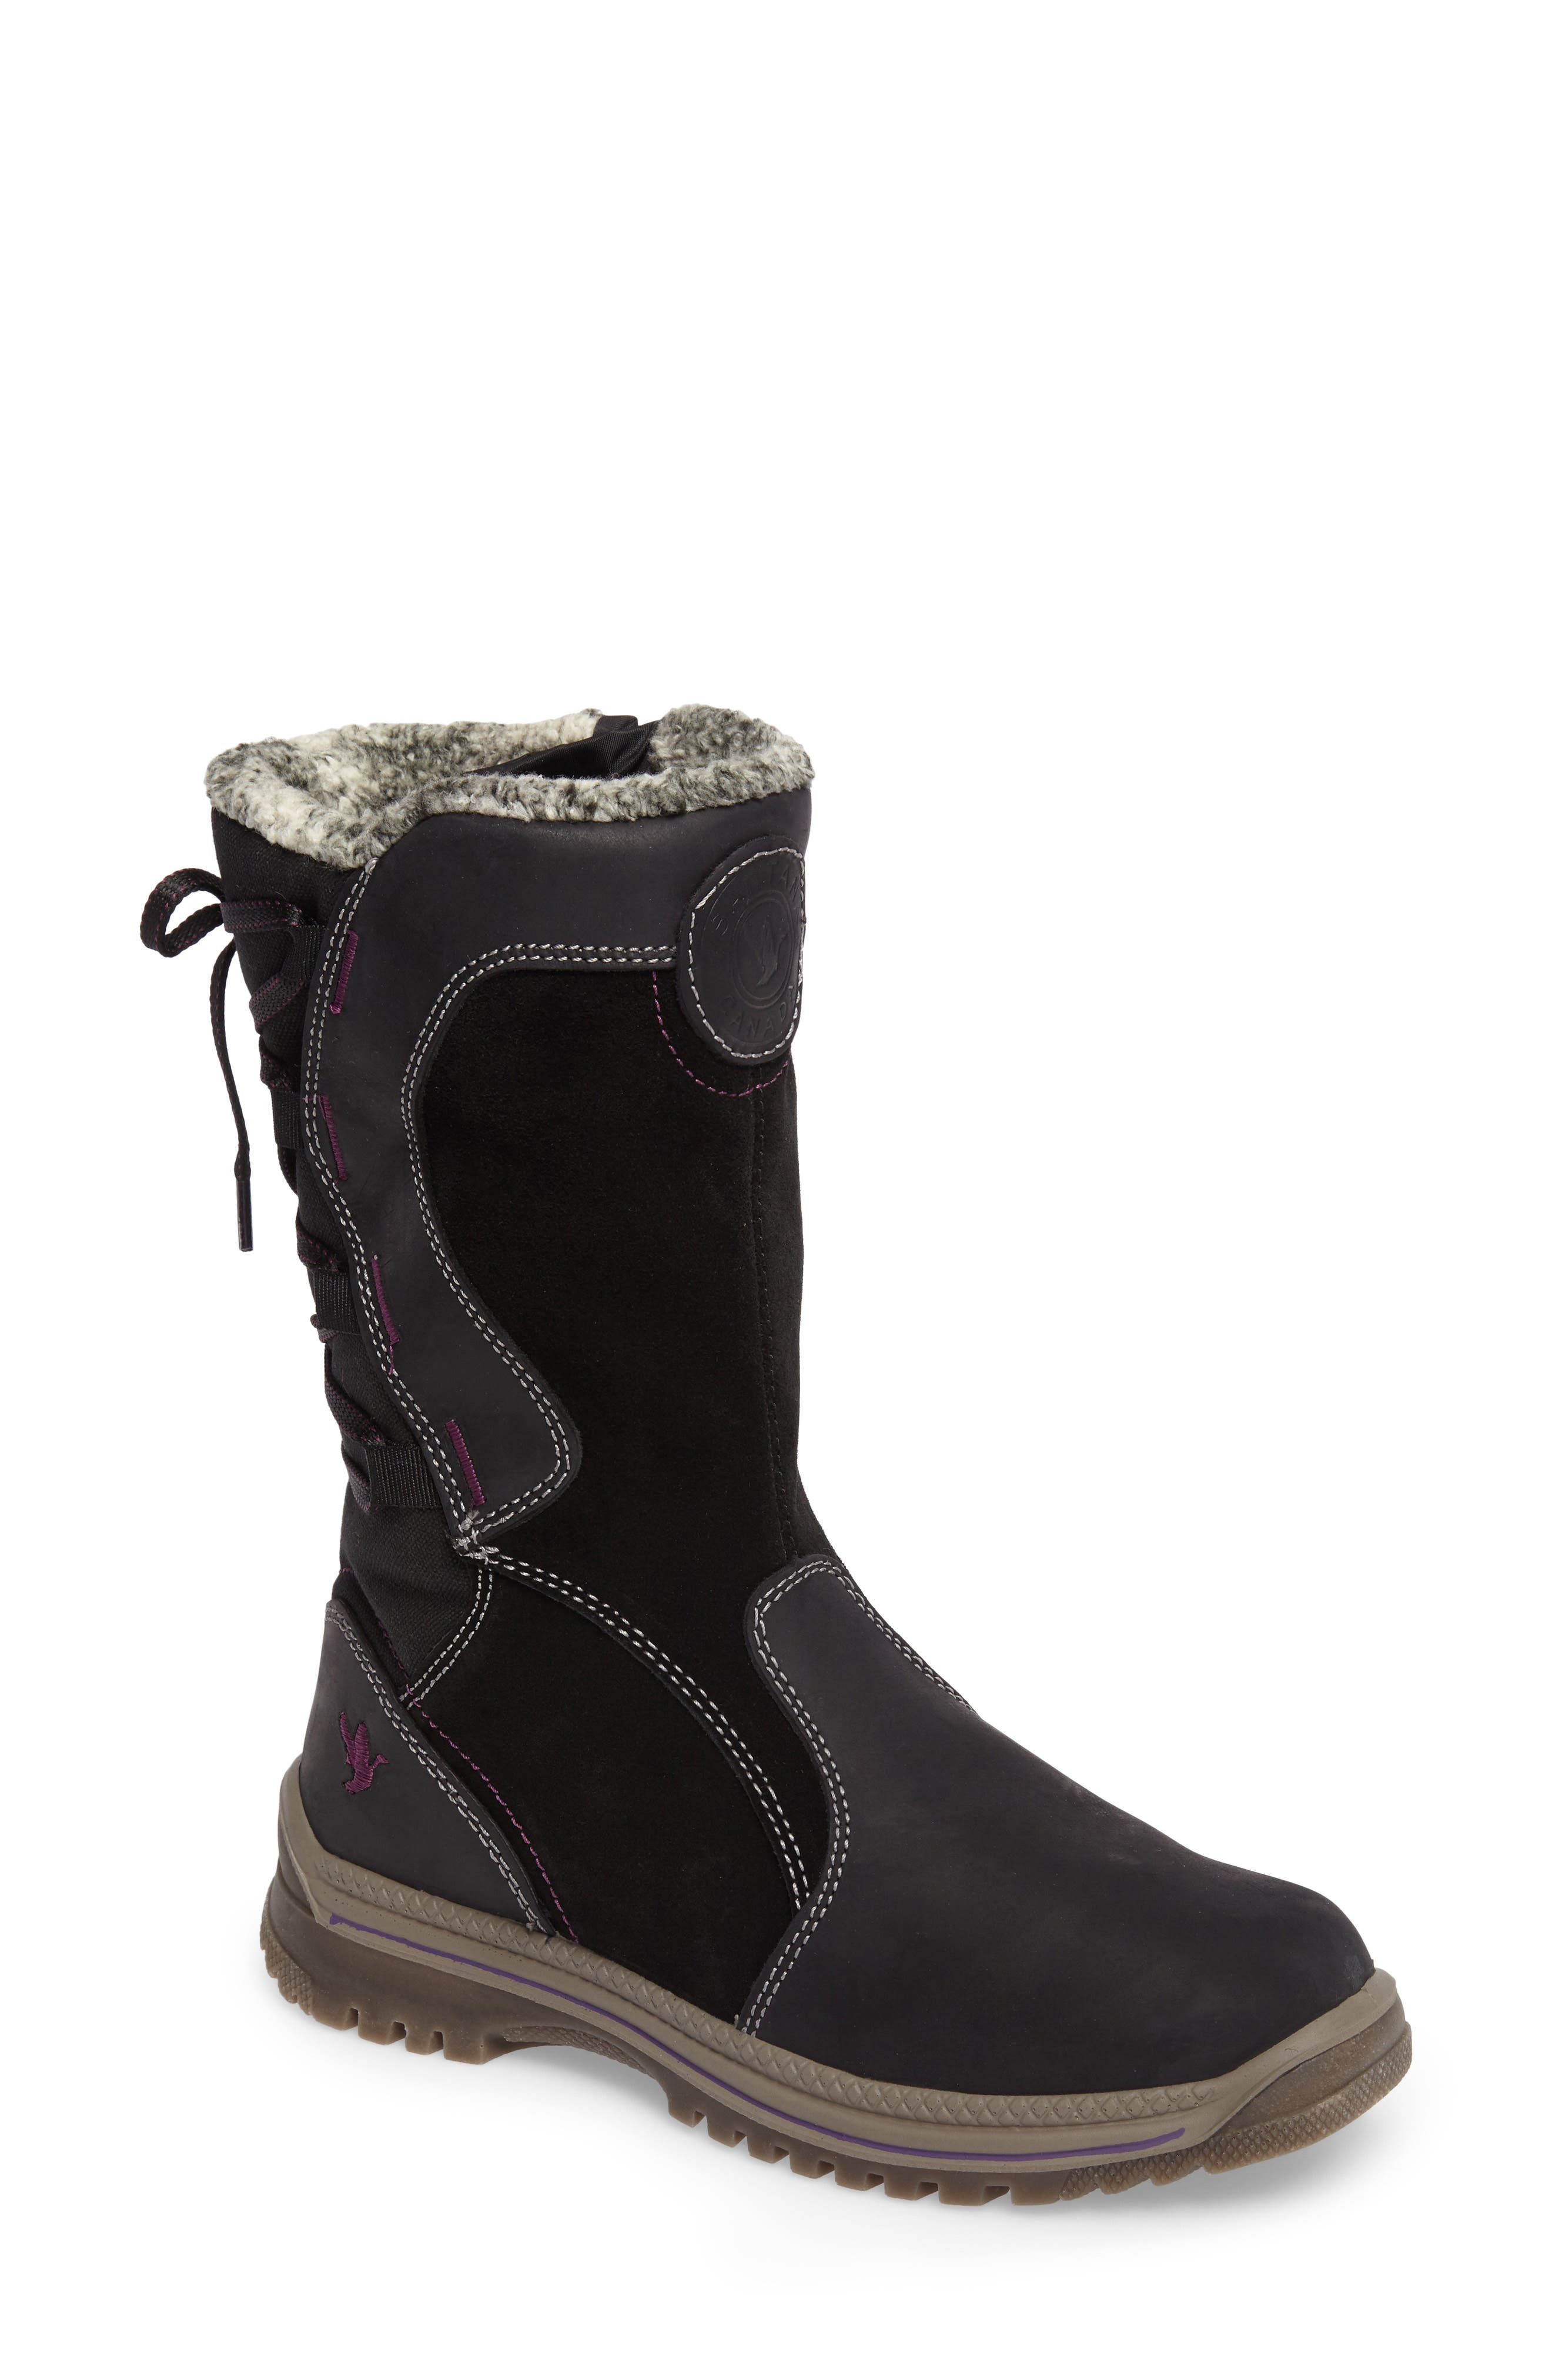 Mayer Faux Fur Lined Waterproof Boot,                         Main,                         color, Black Leather